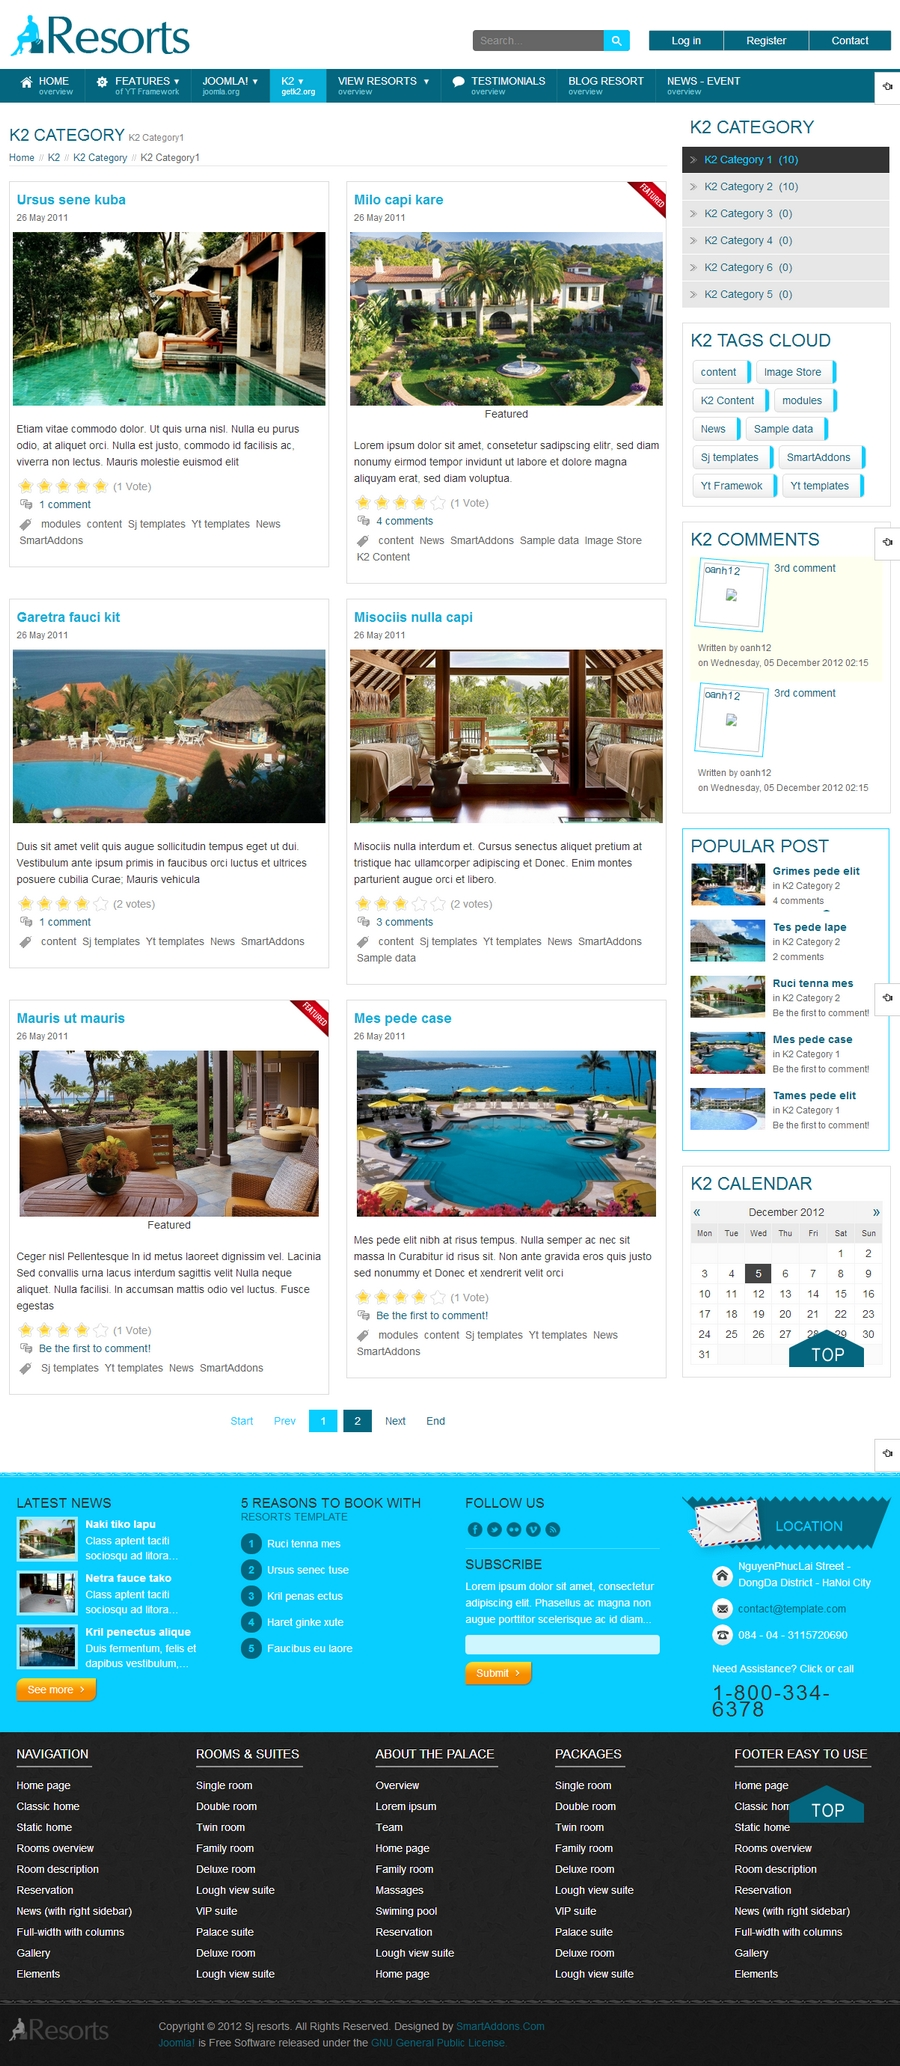 SJ Resorts - Responsive Joomla Resorts & spa Template - 04k2list.jpg